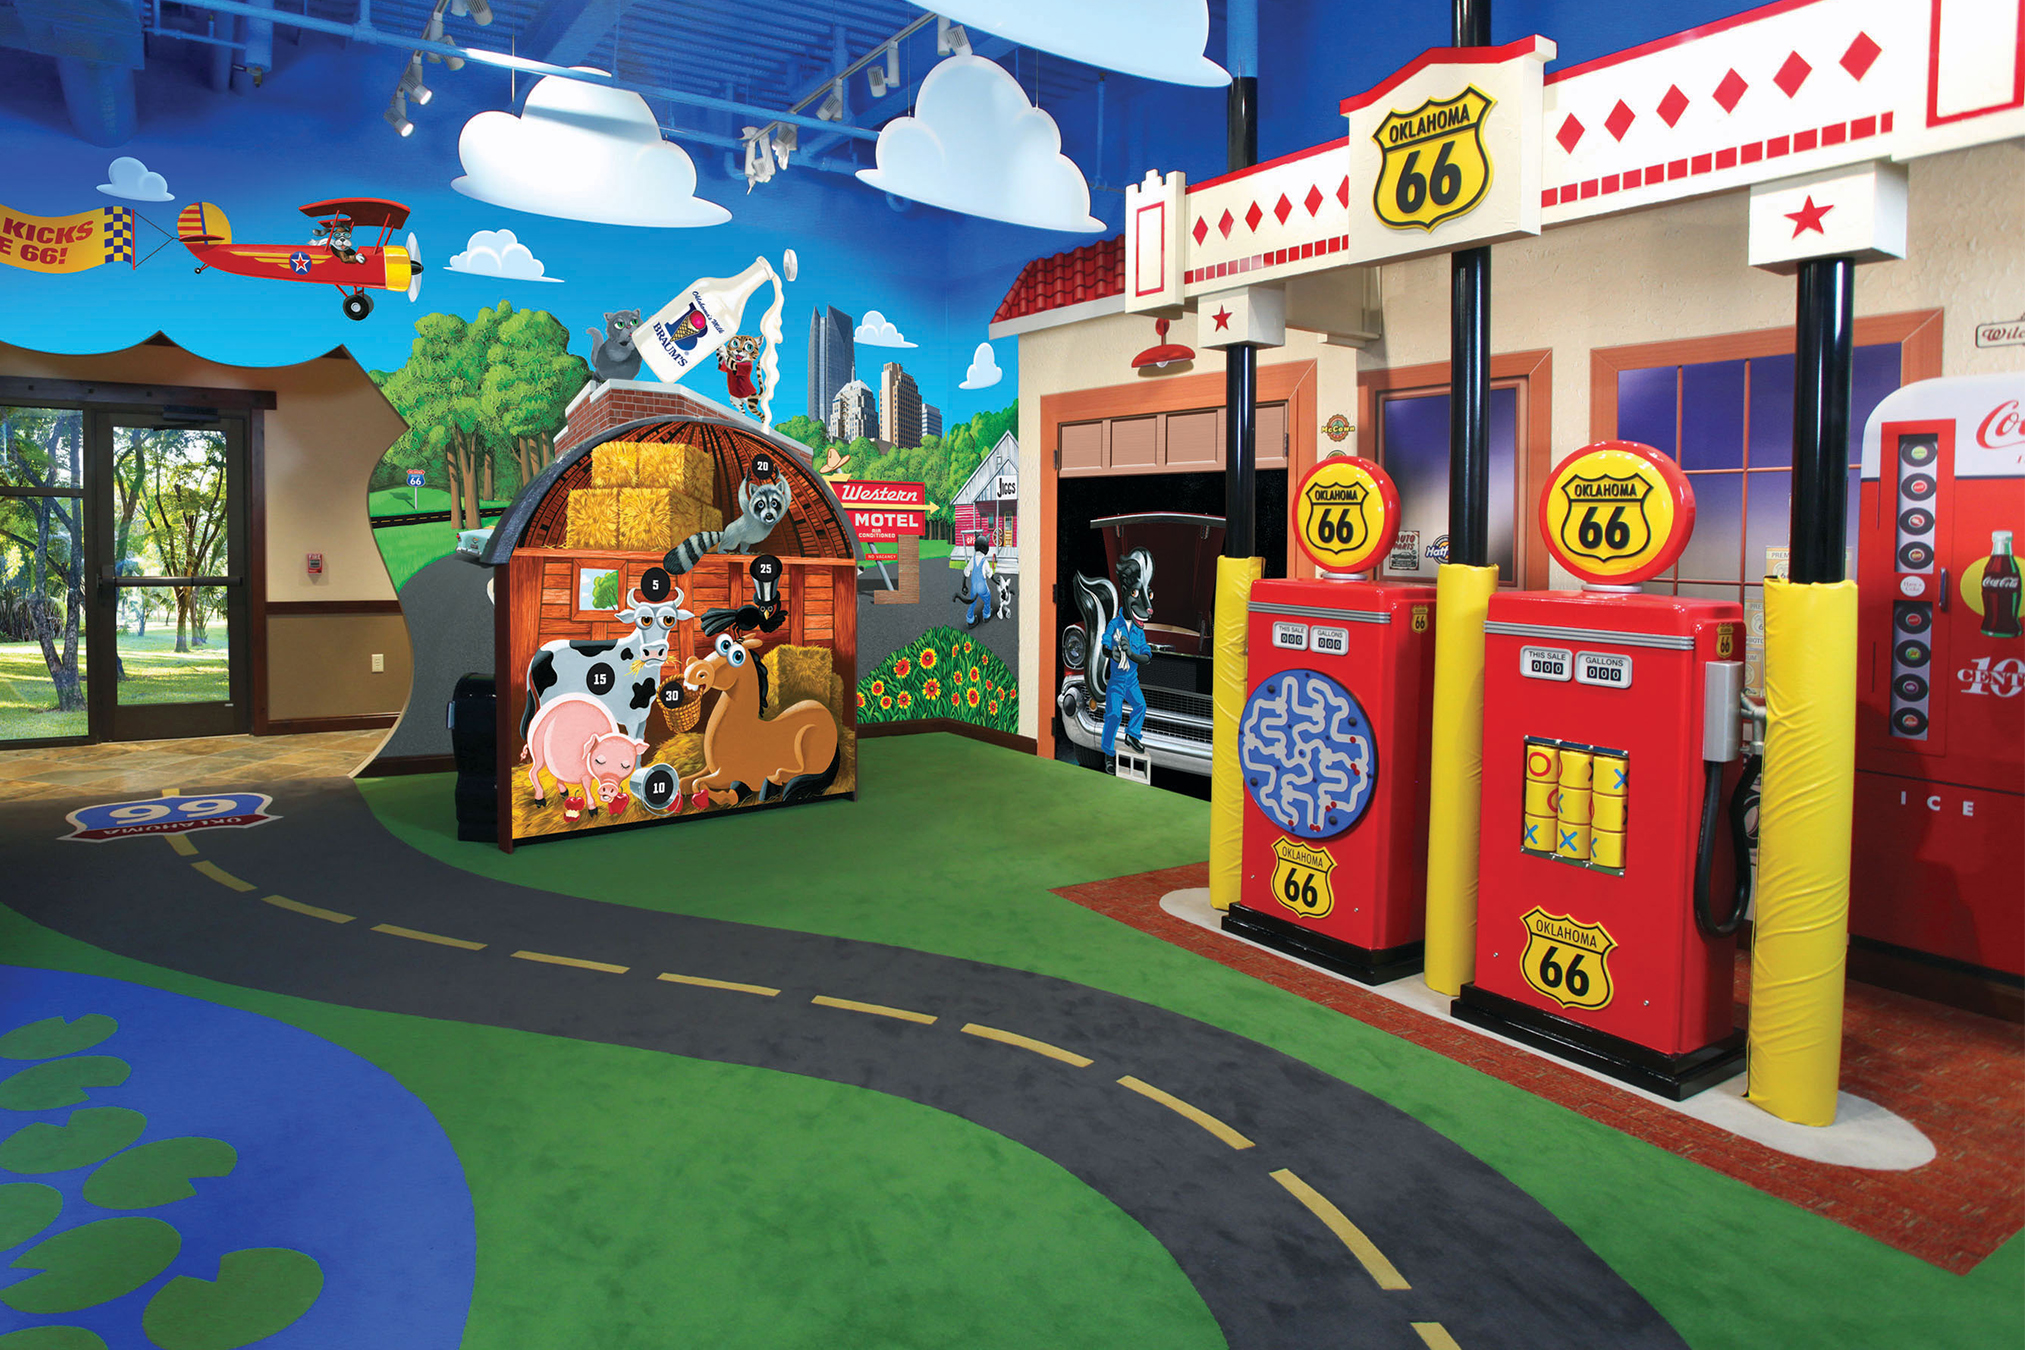 Interior Room of the Oklahoma Route 66 Themed Play Room